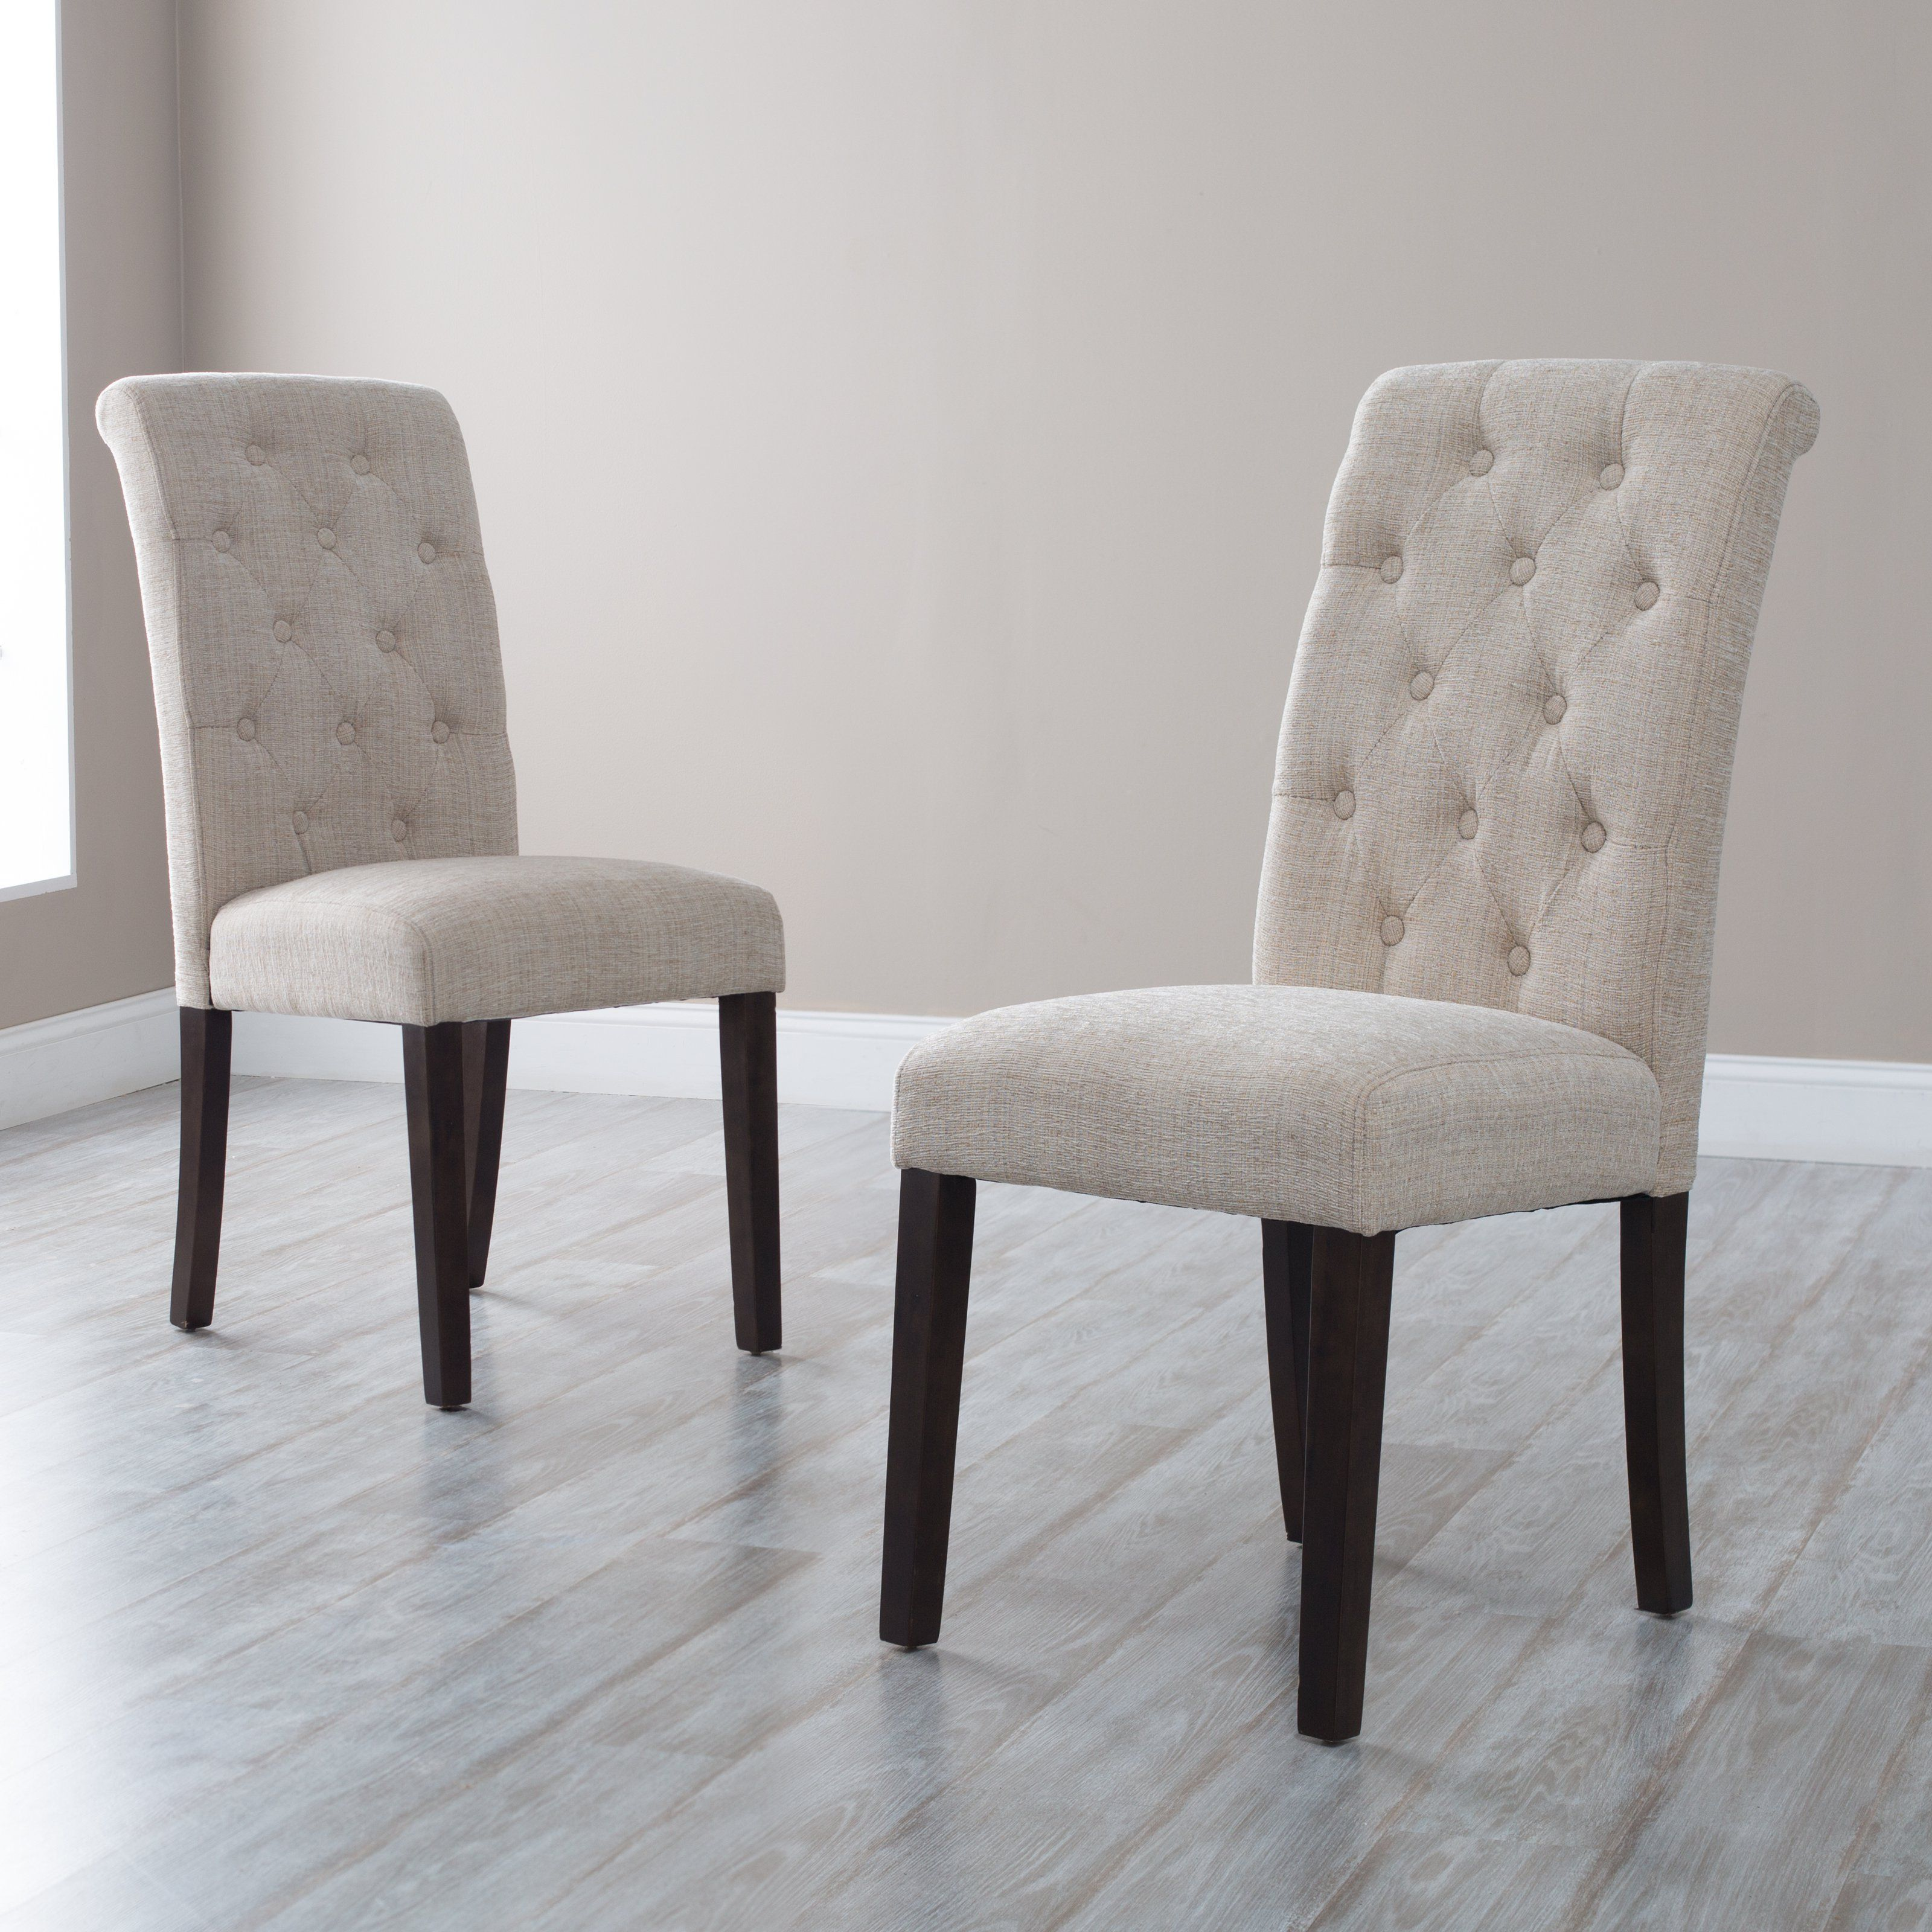 Beige Leather Dining Chairs Ikea Poang Chair Review Have To It Morgana Tufted Parsons